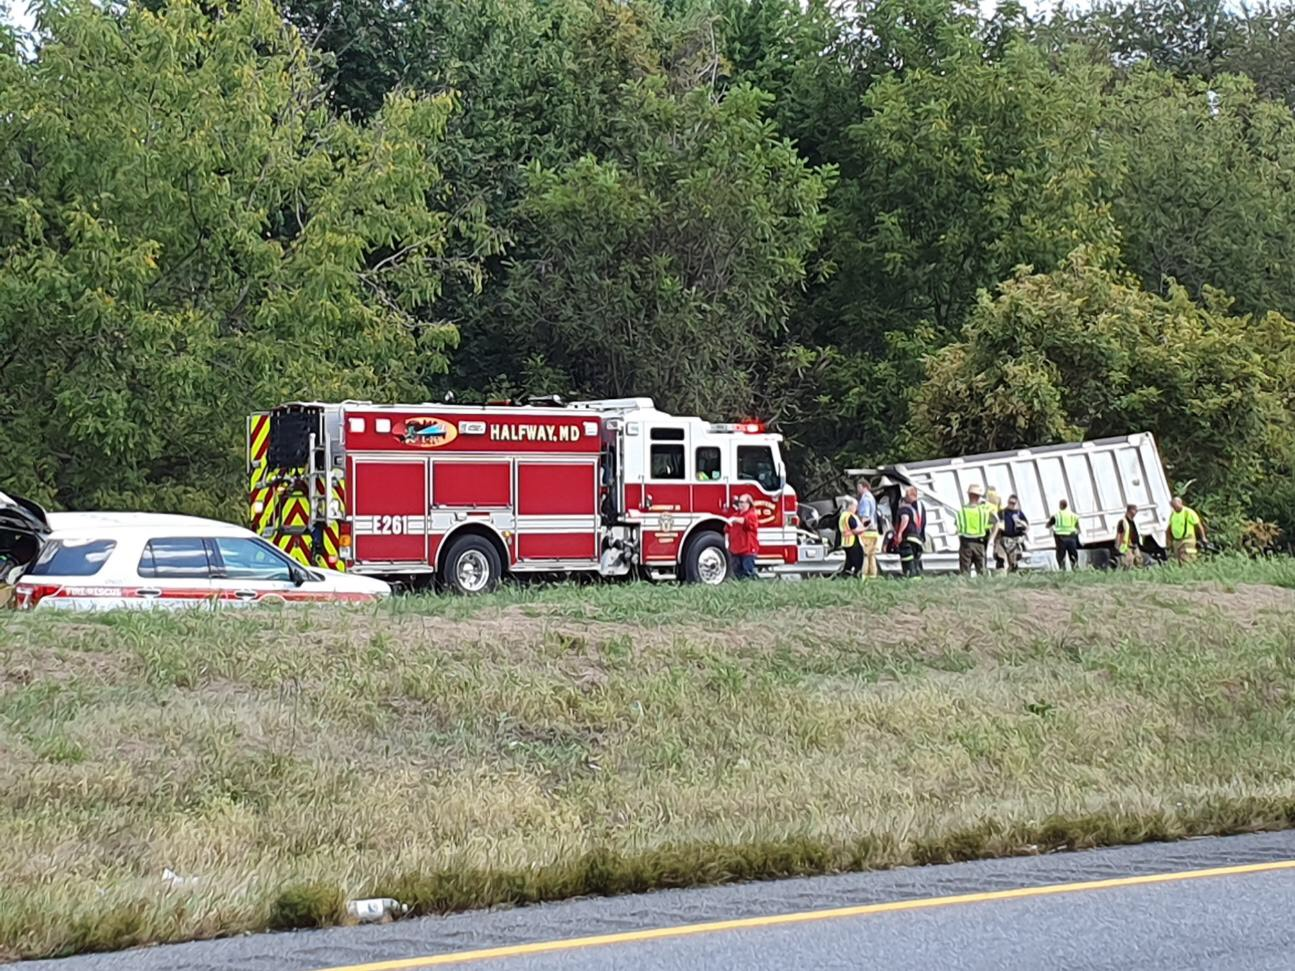 Update: Person identified in three-vehicle crash on I-70 ... on map of ashland pa, map of franklin pa, map of mount holly springs pa, map of crystal spring pa, map of birdsboro pa, map of curryville pa, map of new oxford pa, map of mount union pa, map of armagh pa, map of south mountain pa, map of hopewell pa, map of new paris pa, map of three springs pa, map of red lion pa, map of buck hill falls pa, map of cross fork pa, map of needmore pa, map of shade gap pa, map of huntingdon pa, map of catawissa pa,